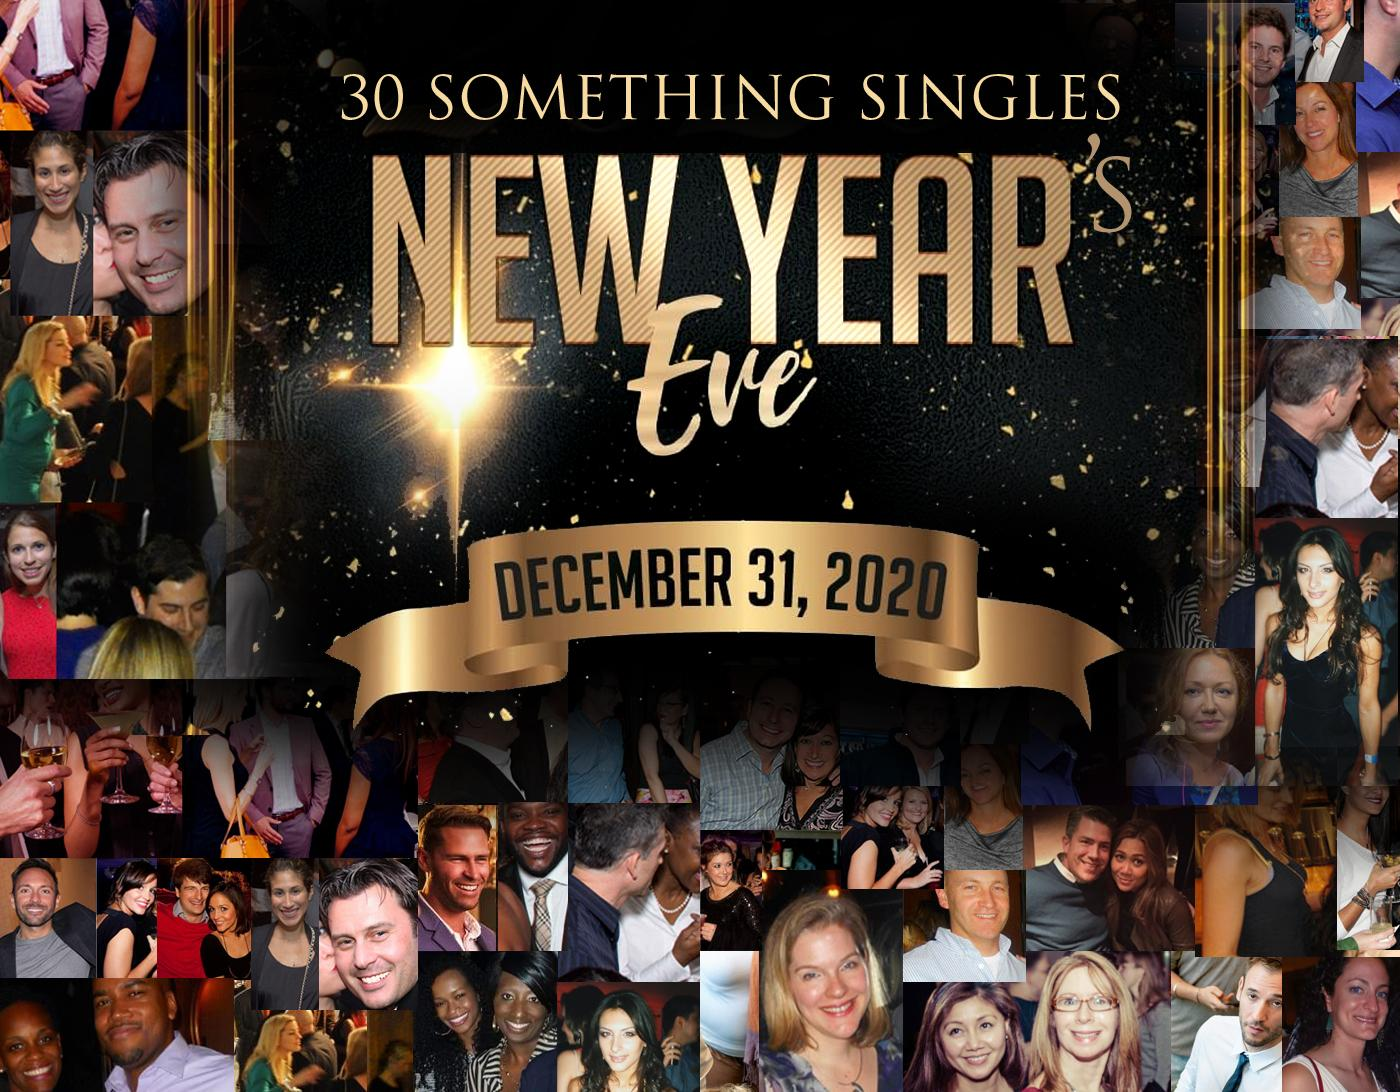 30 Somethings Singles New Year's Eve Party